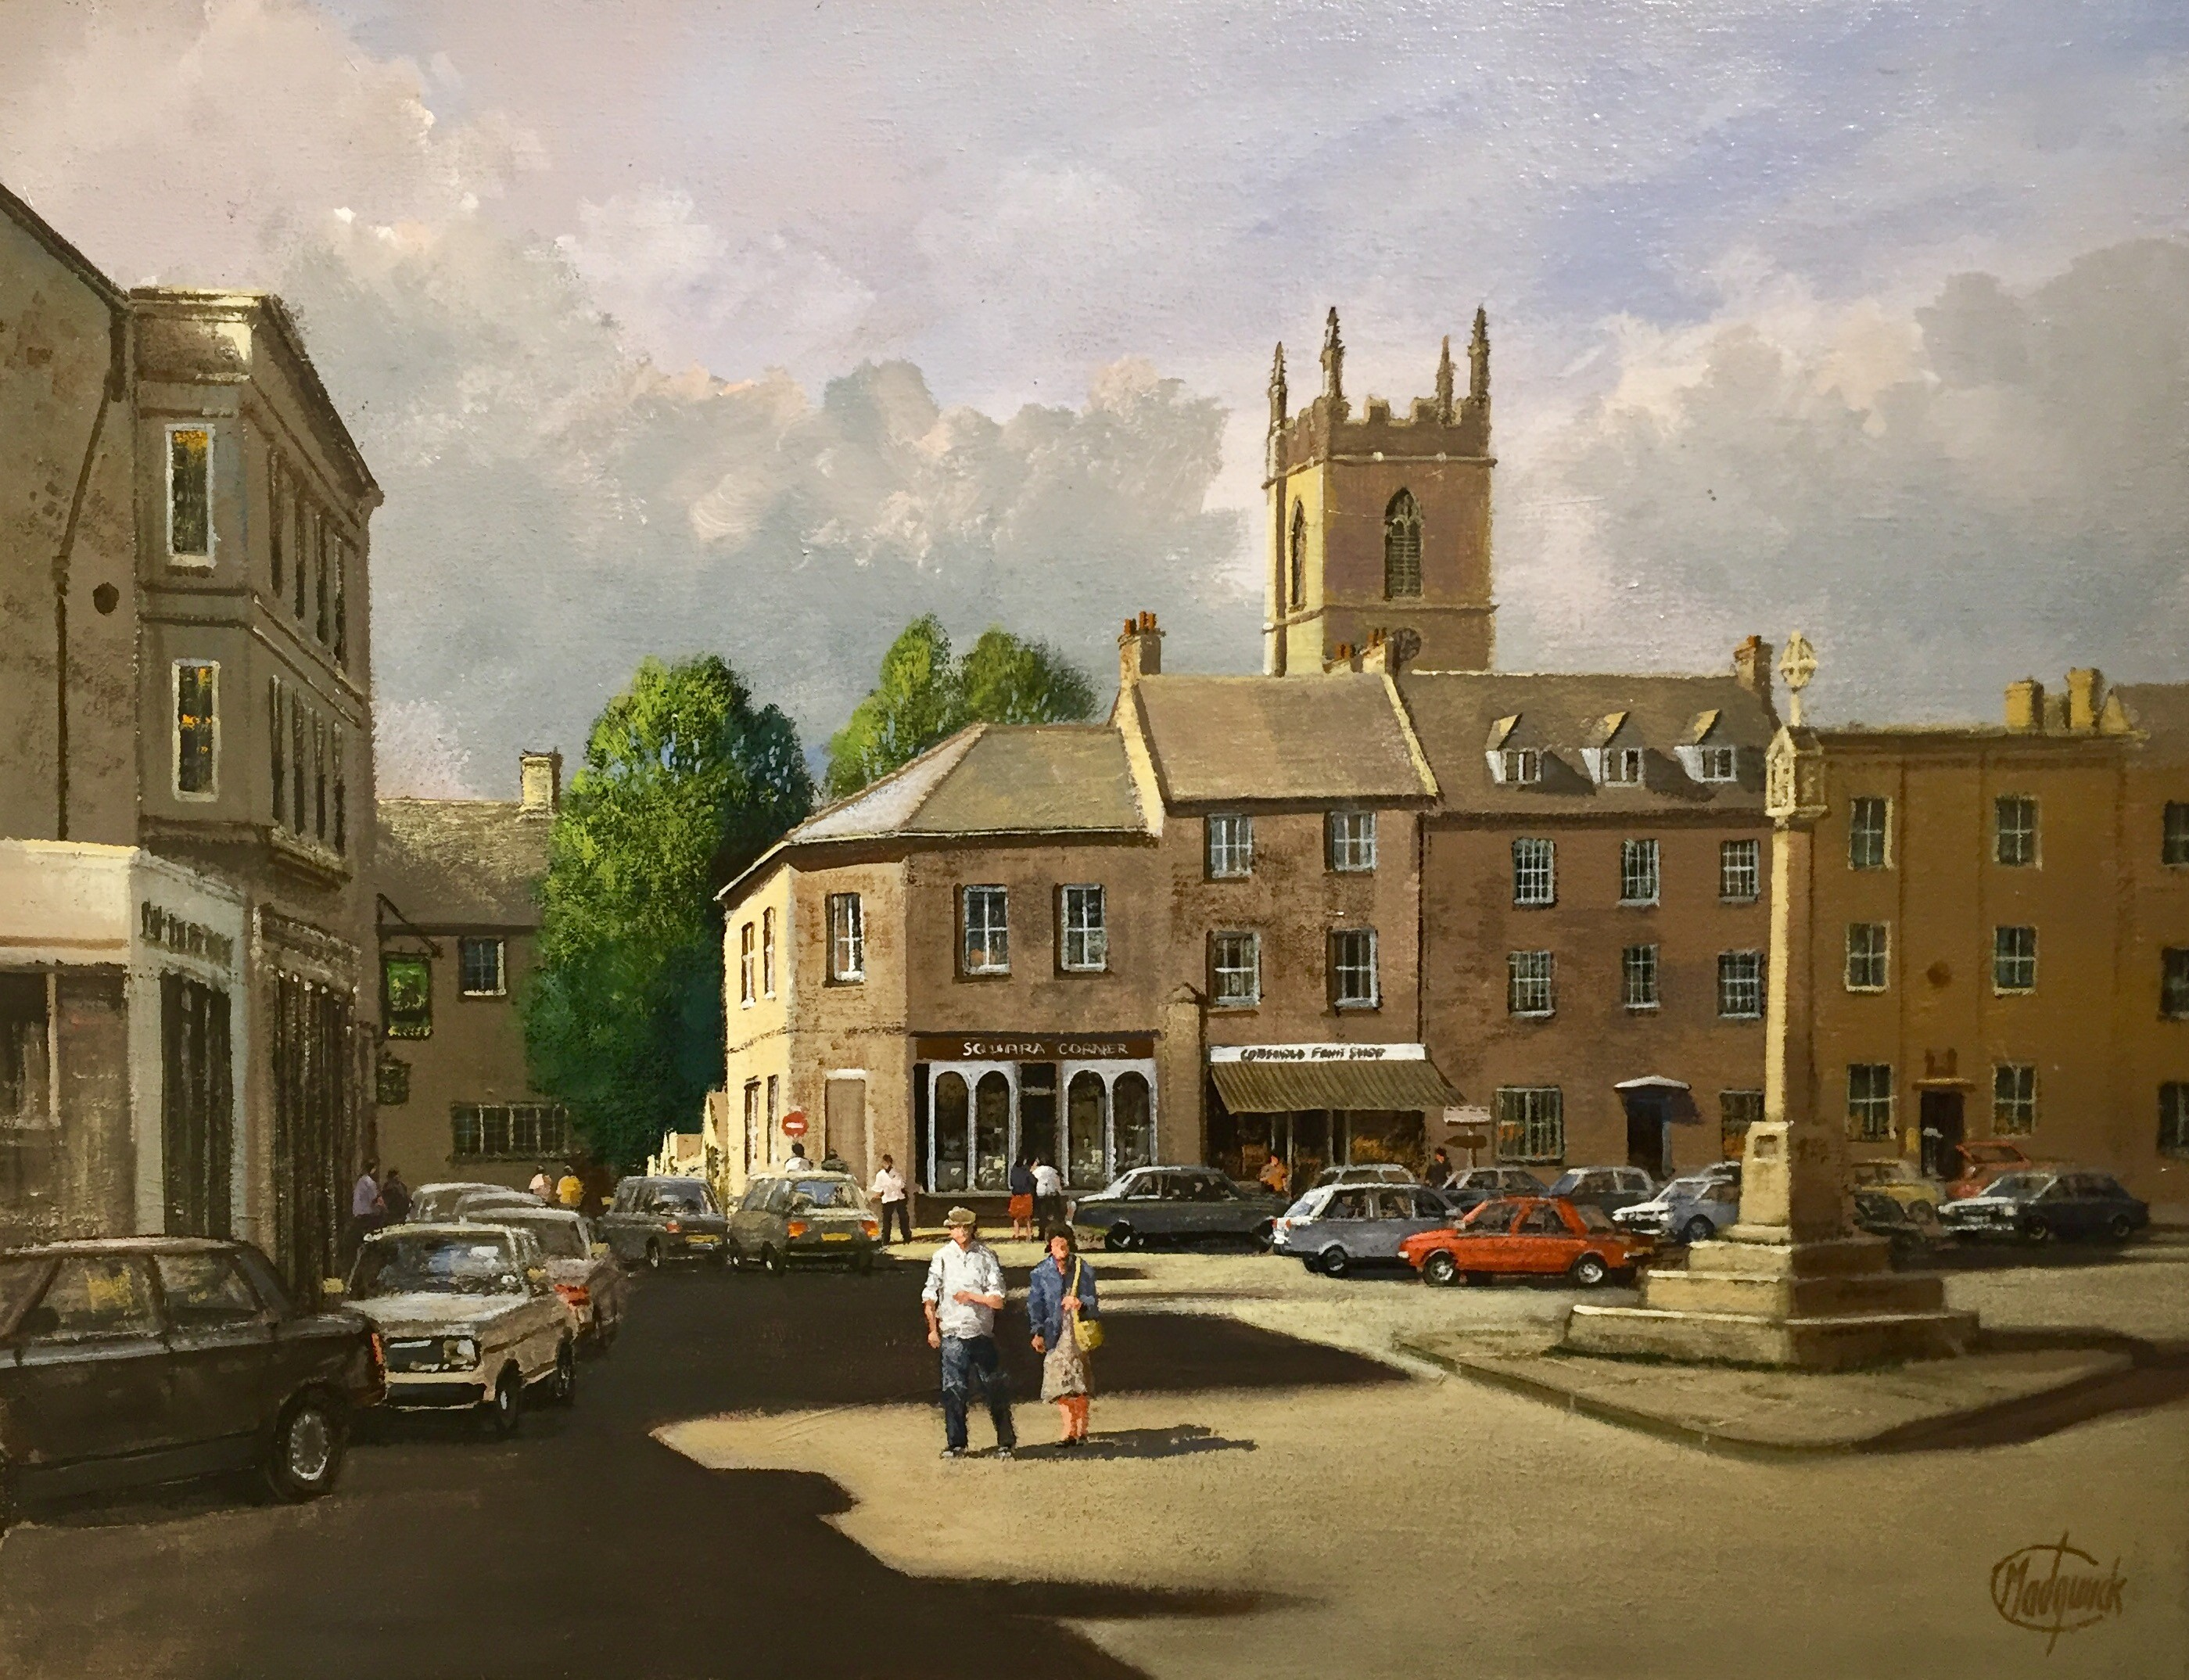 The Square with St Edward's Church, Stow-on-the-Wold - ON SALE